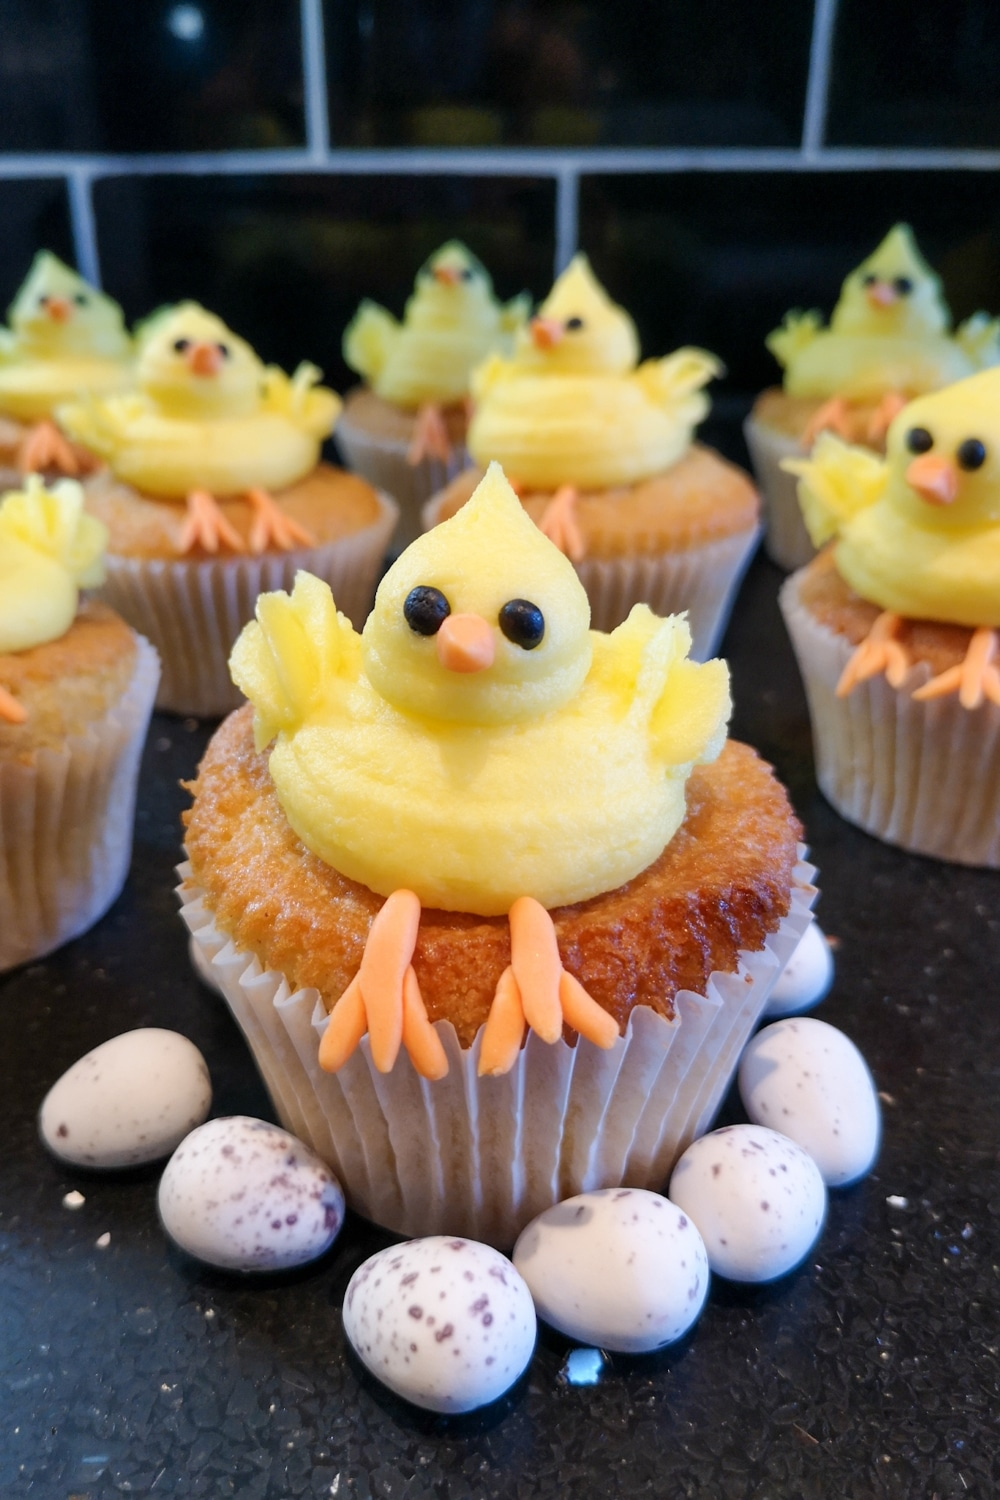 Cute Easter Chick Cupcakes Recipe - a vanilla cupcake with a lemon buttercream frosting shaped as a baby chick